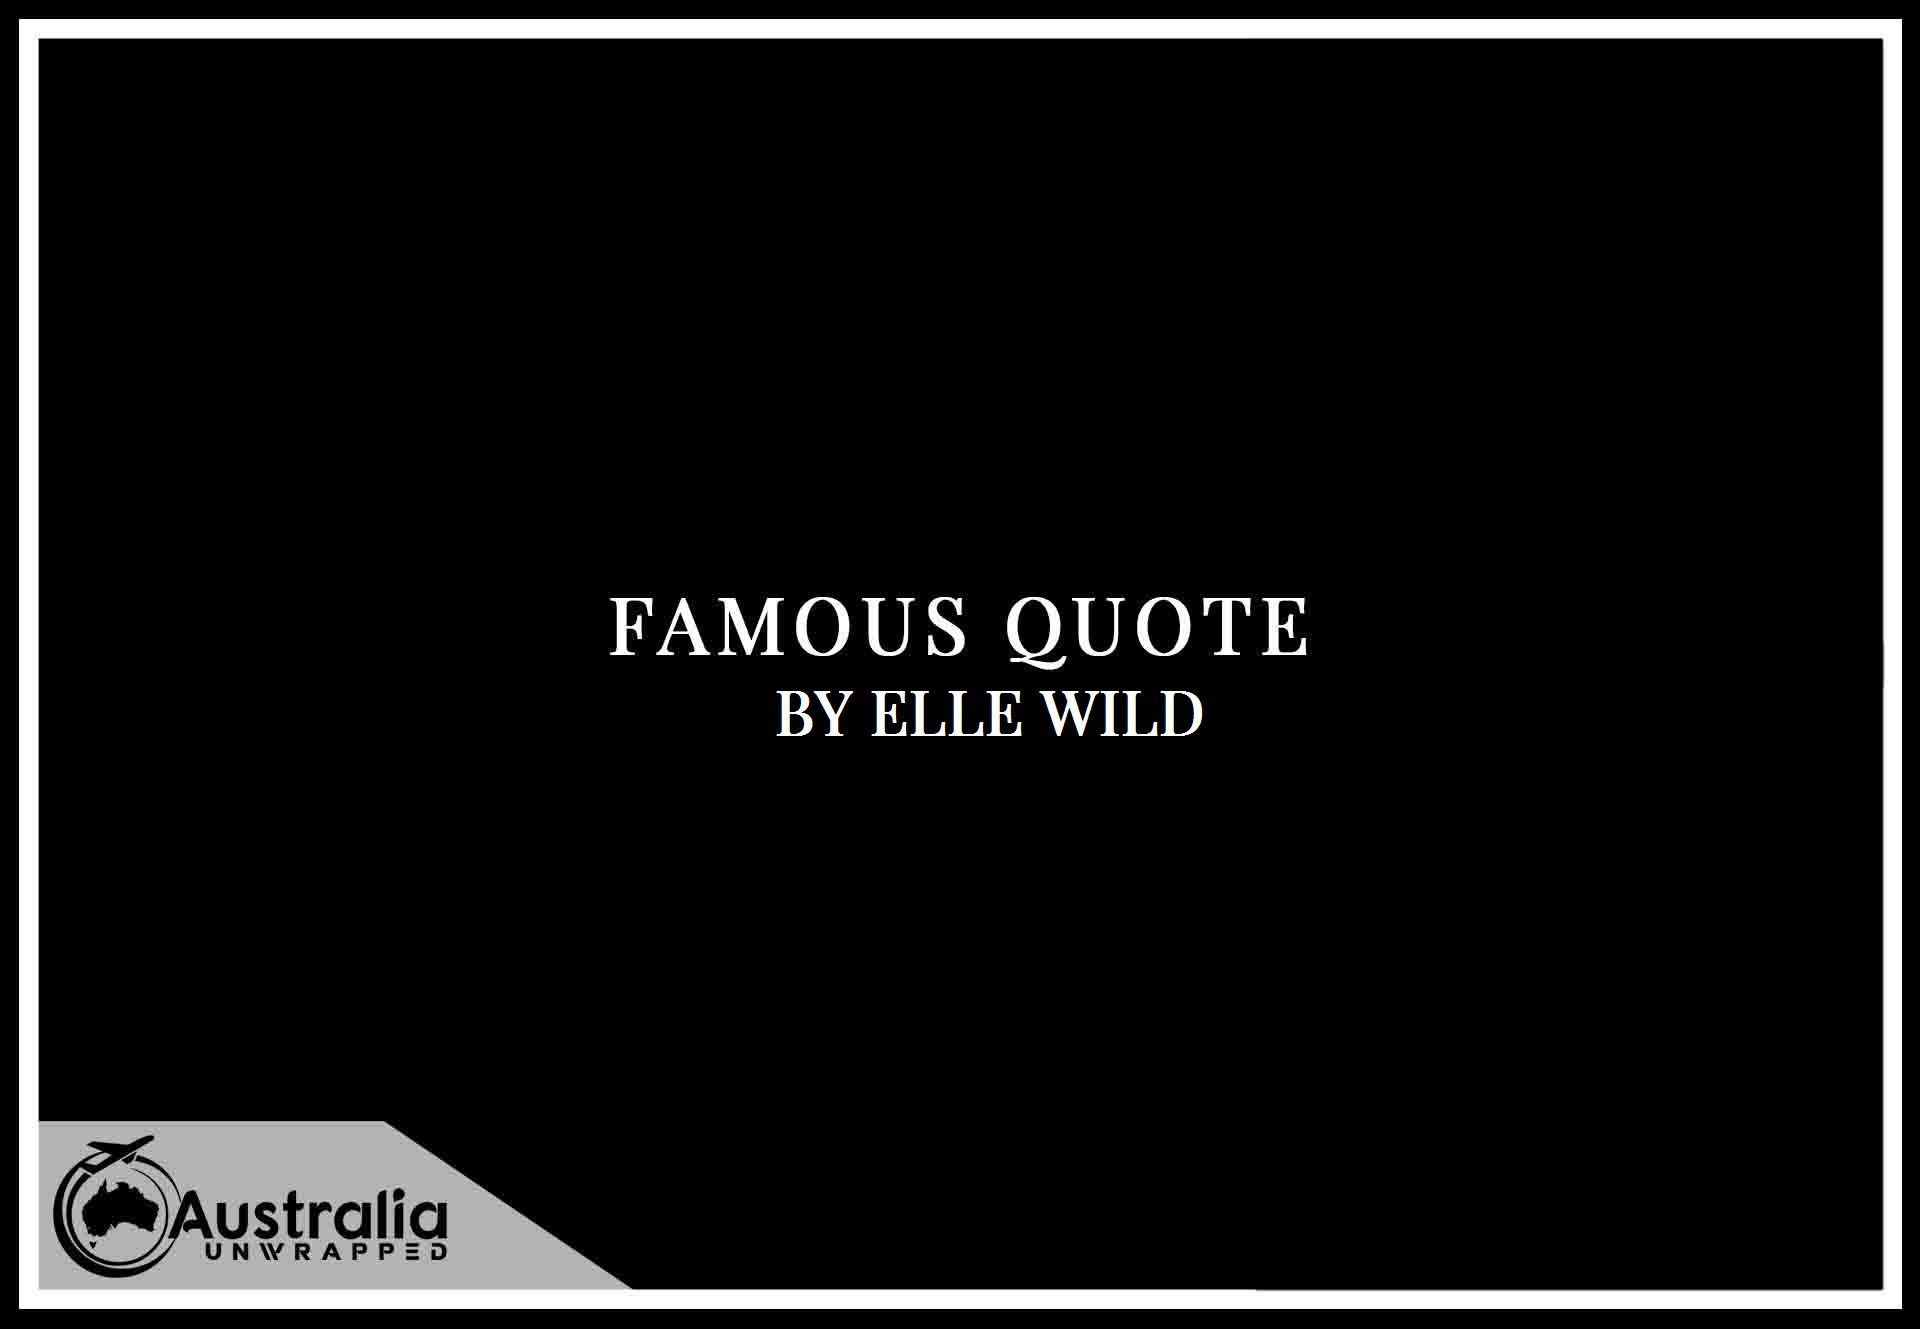 Elle Wild's Top 1 Popular and Famous Quotes